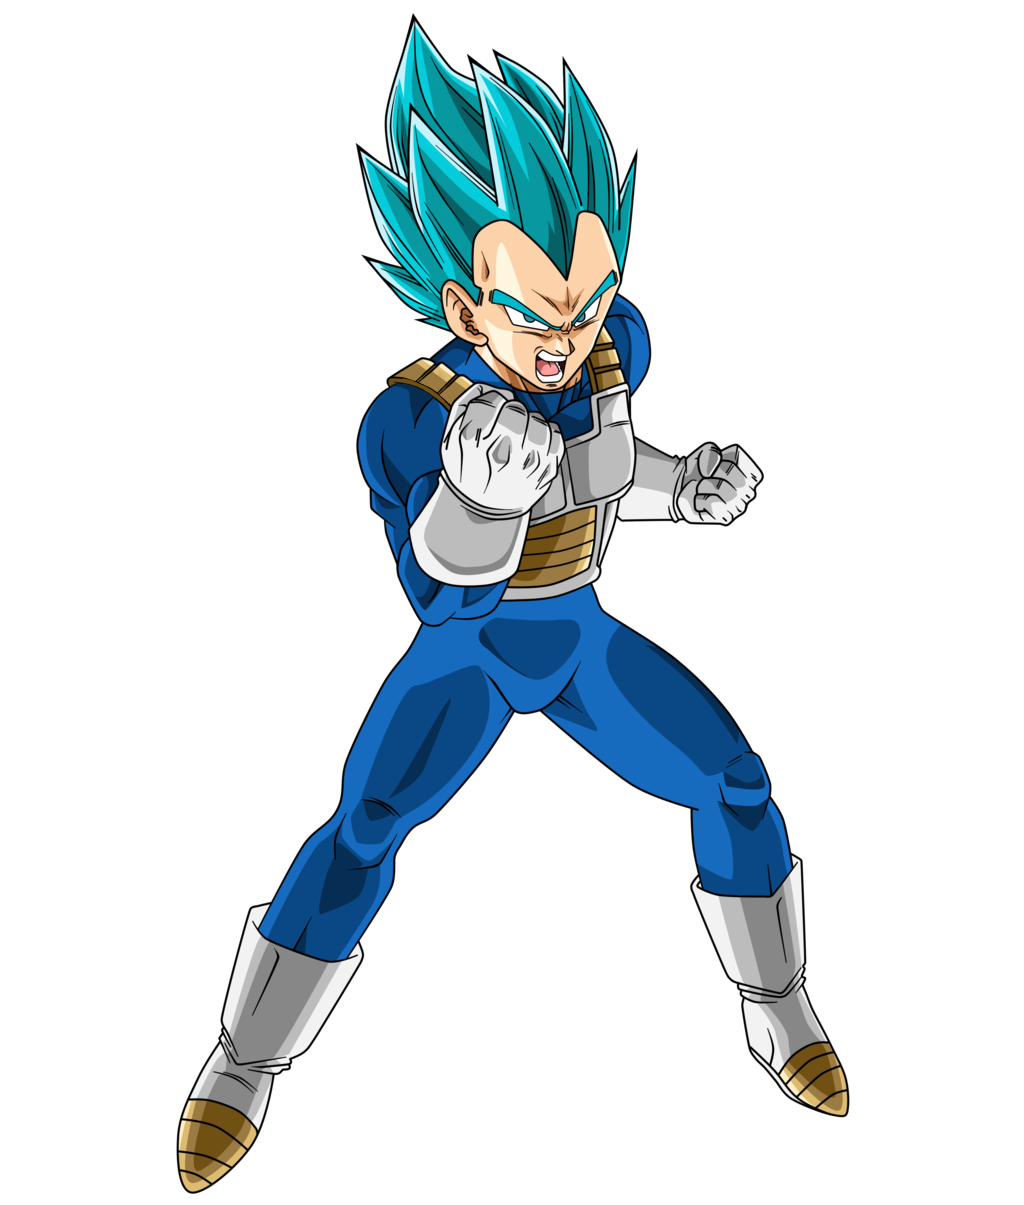 Ssj vegeta png. Image blue by saodvd